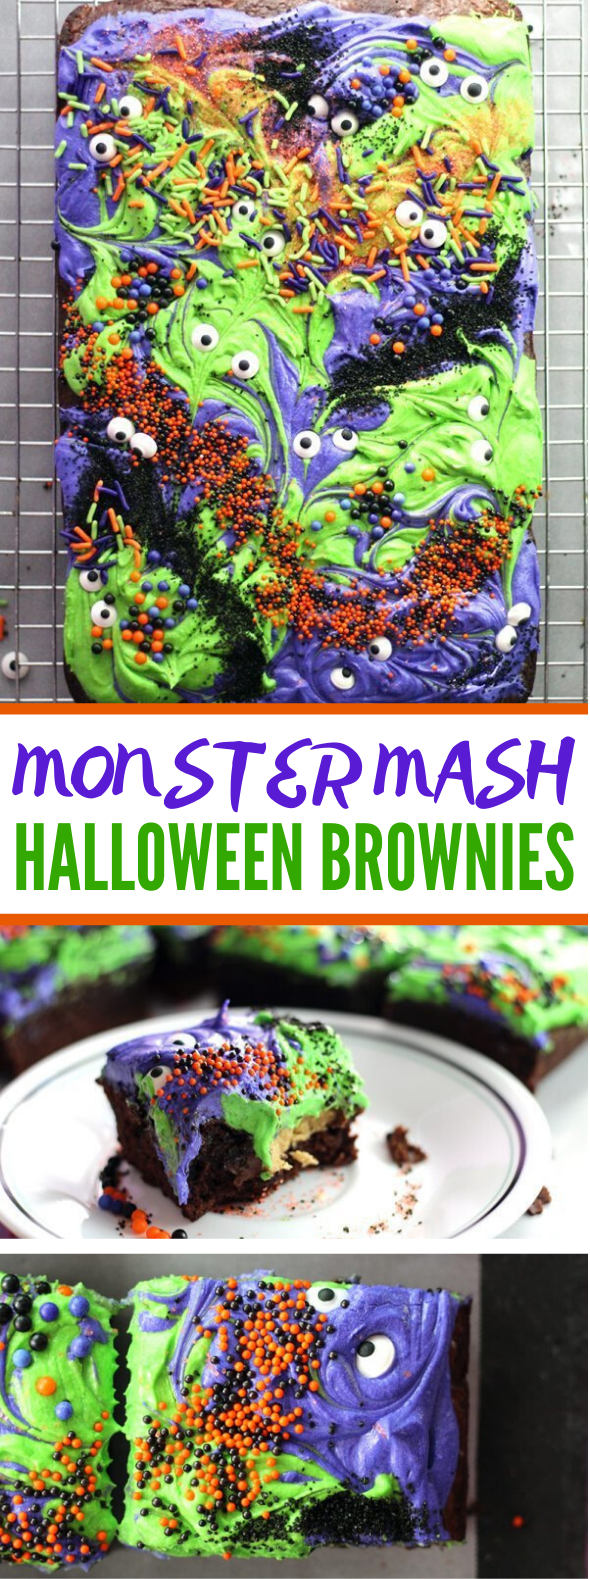 Scary-Cute Monster Mash Halloween Brownies #desserts #cake